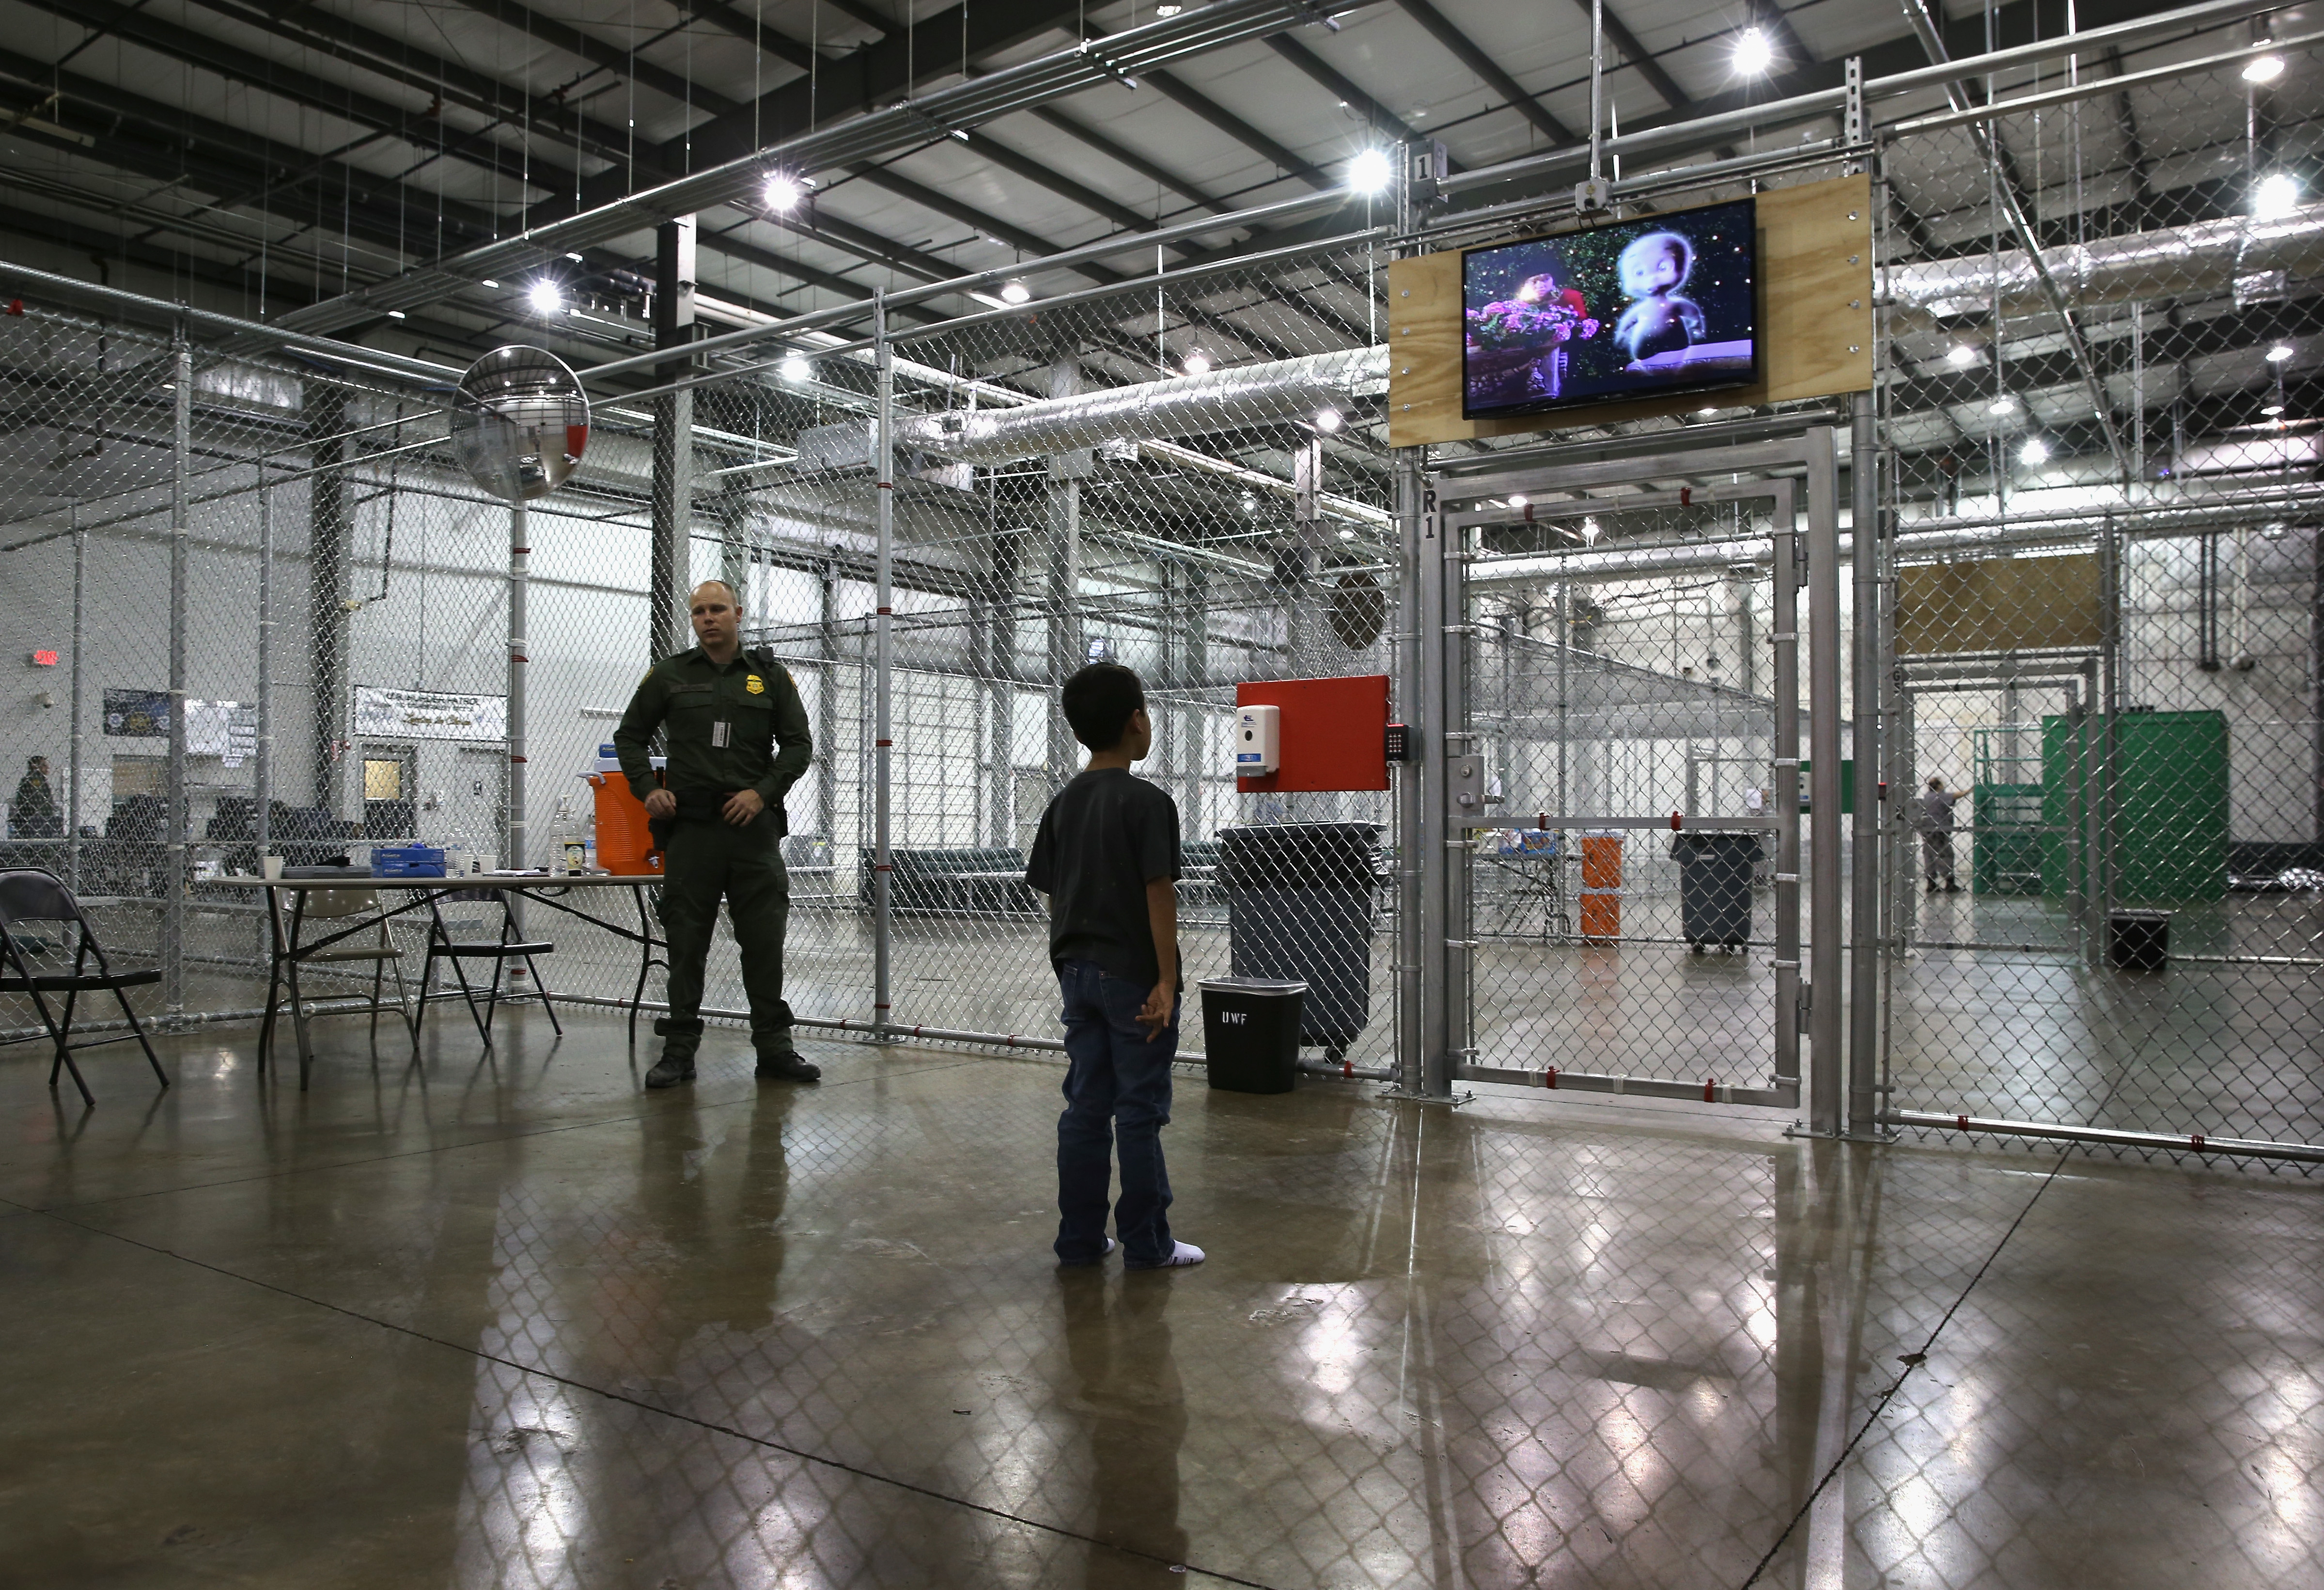 A boy from Honduras watches a movie at a detention facility run by the U.S. Border Patrol on September 8, 2014 in McAllen, Texas. The Border Patrol opened the holding center to temporarily house the children after tens of thousands of families and unaccompanied minors from Central America crossed the border illegally into the United States during the spring and summer.